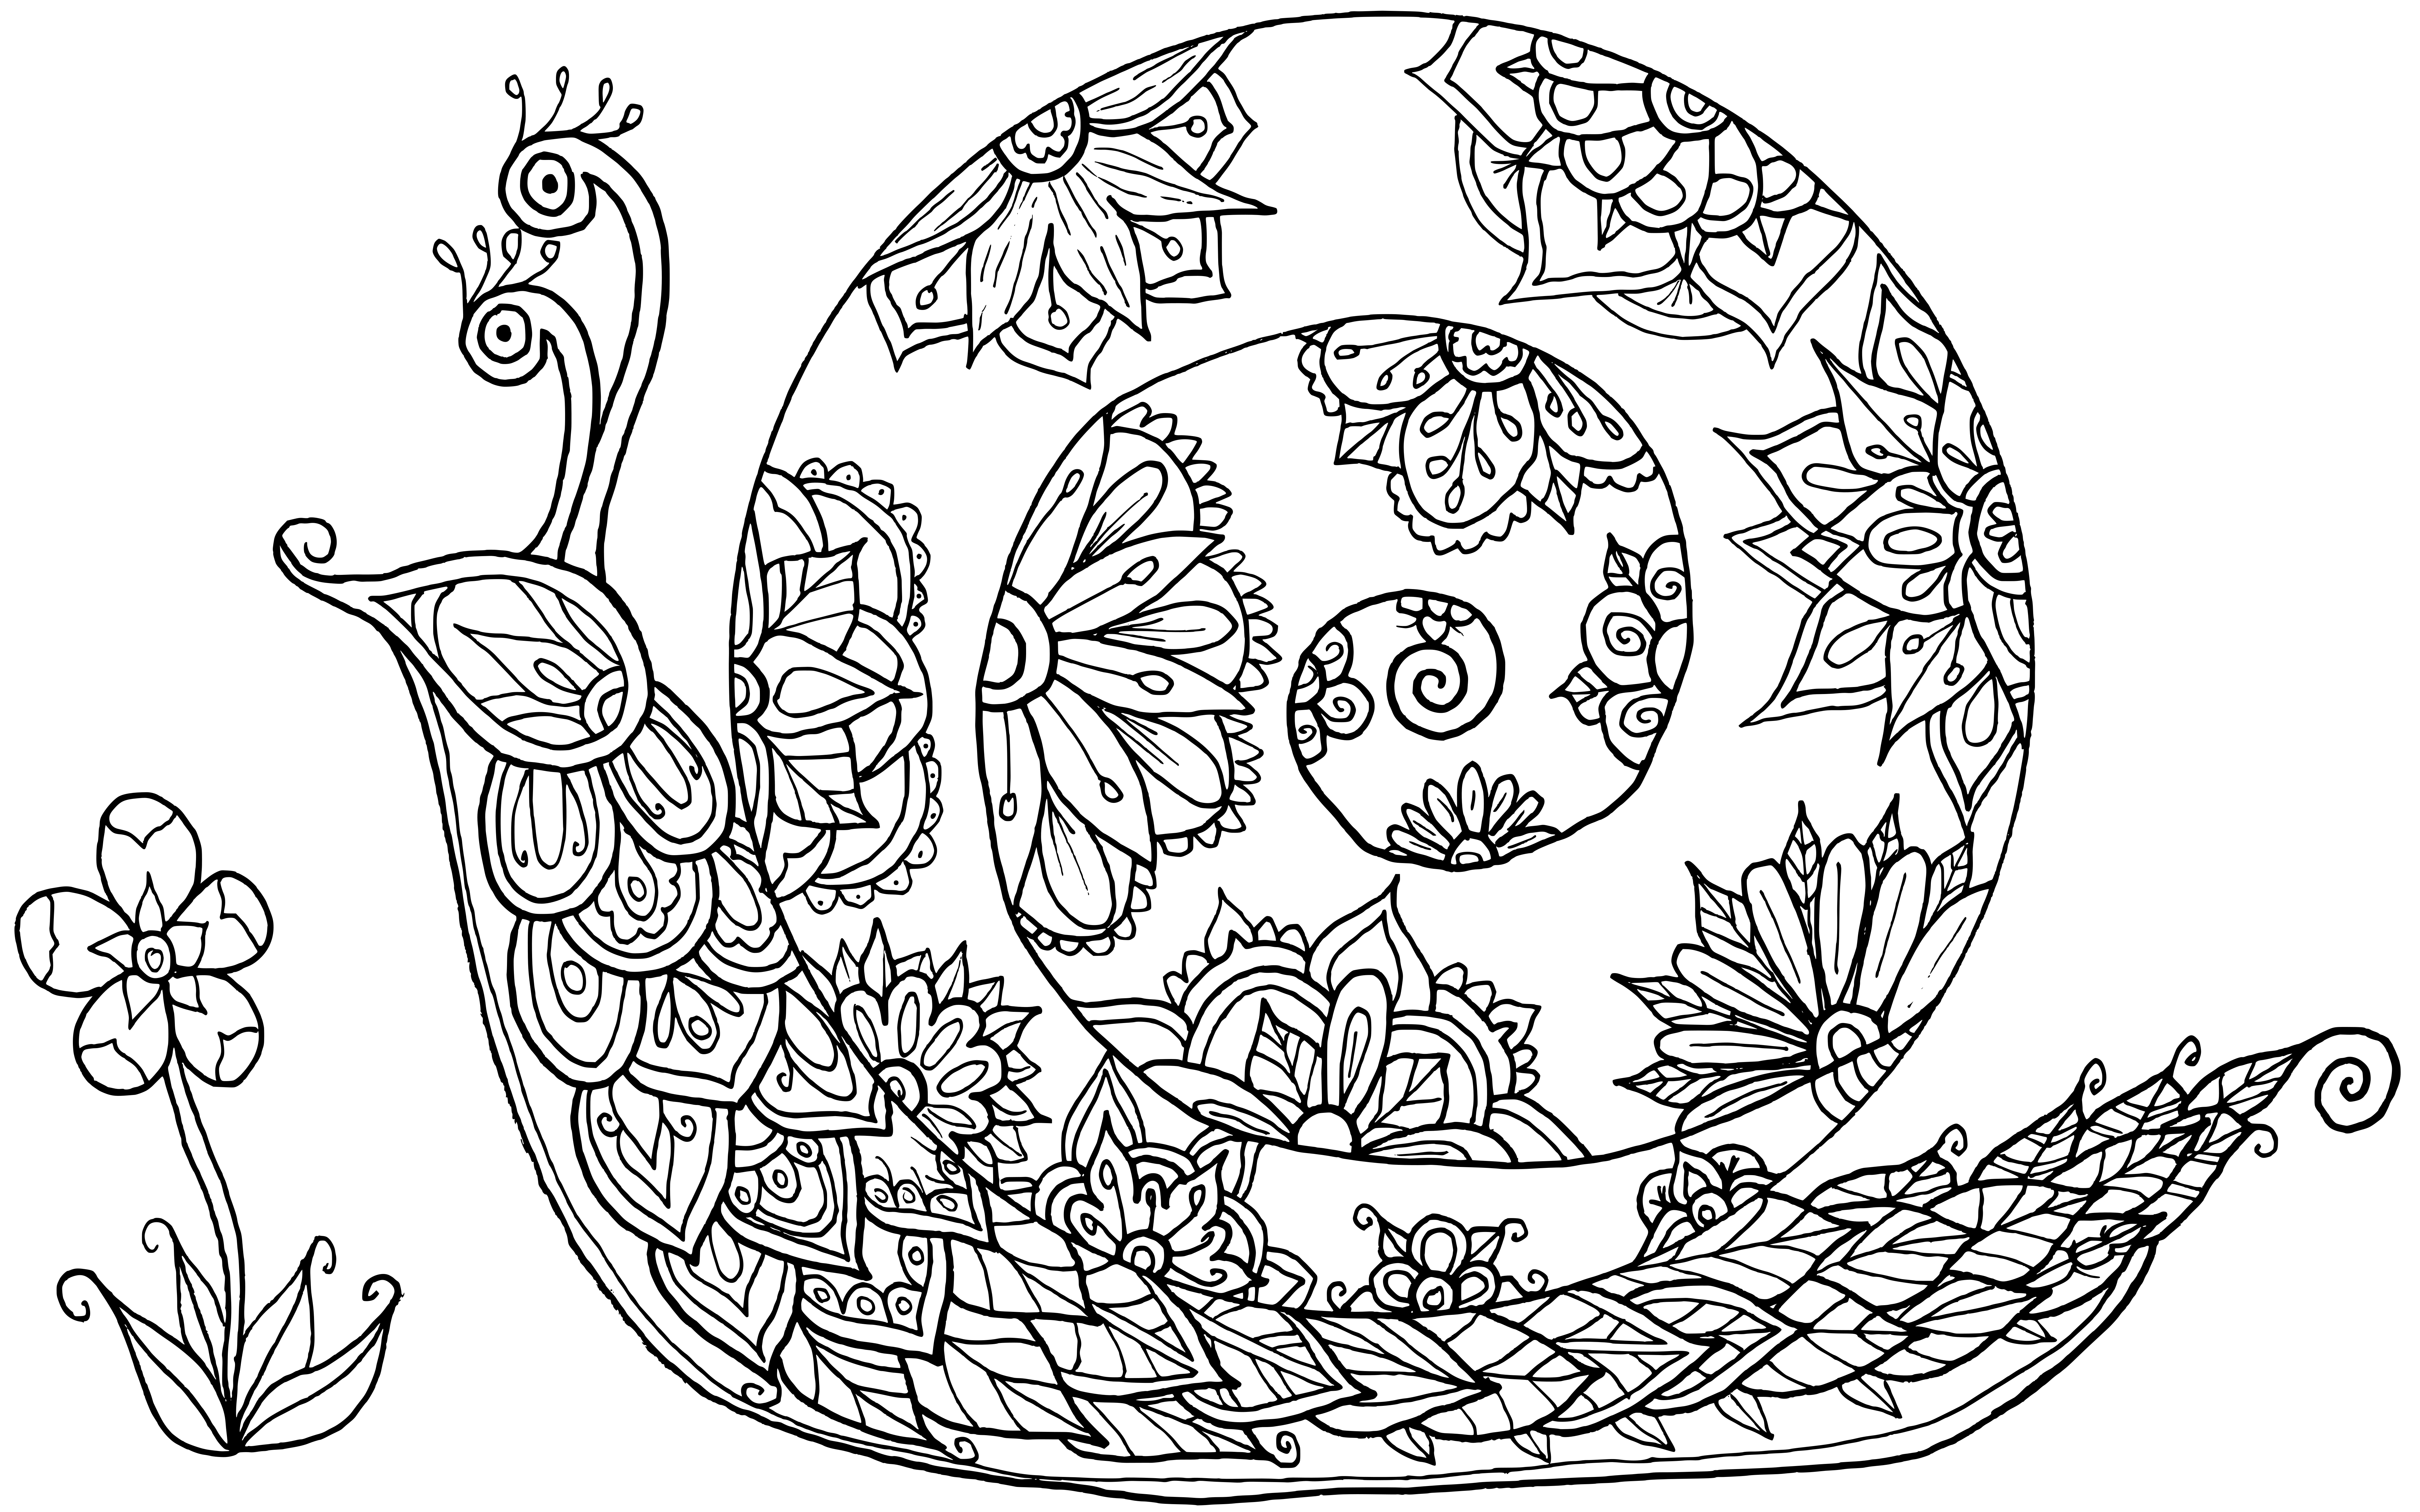 Snail Doodle by Del Angharad (WelshPixie) | Animal ...